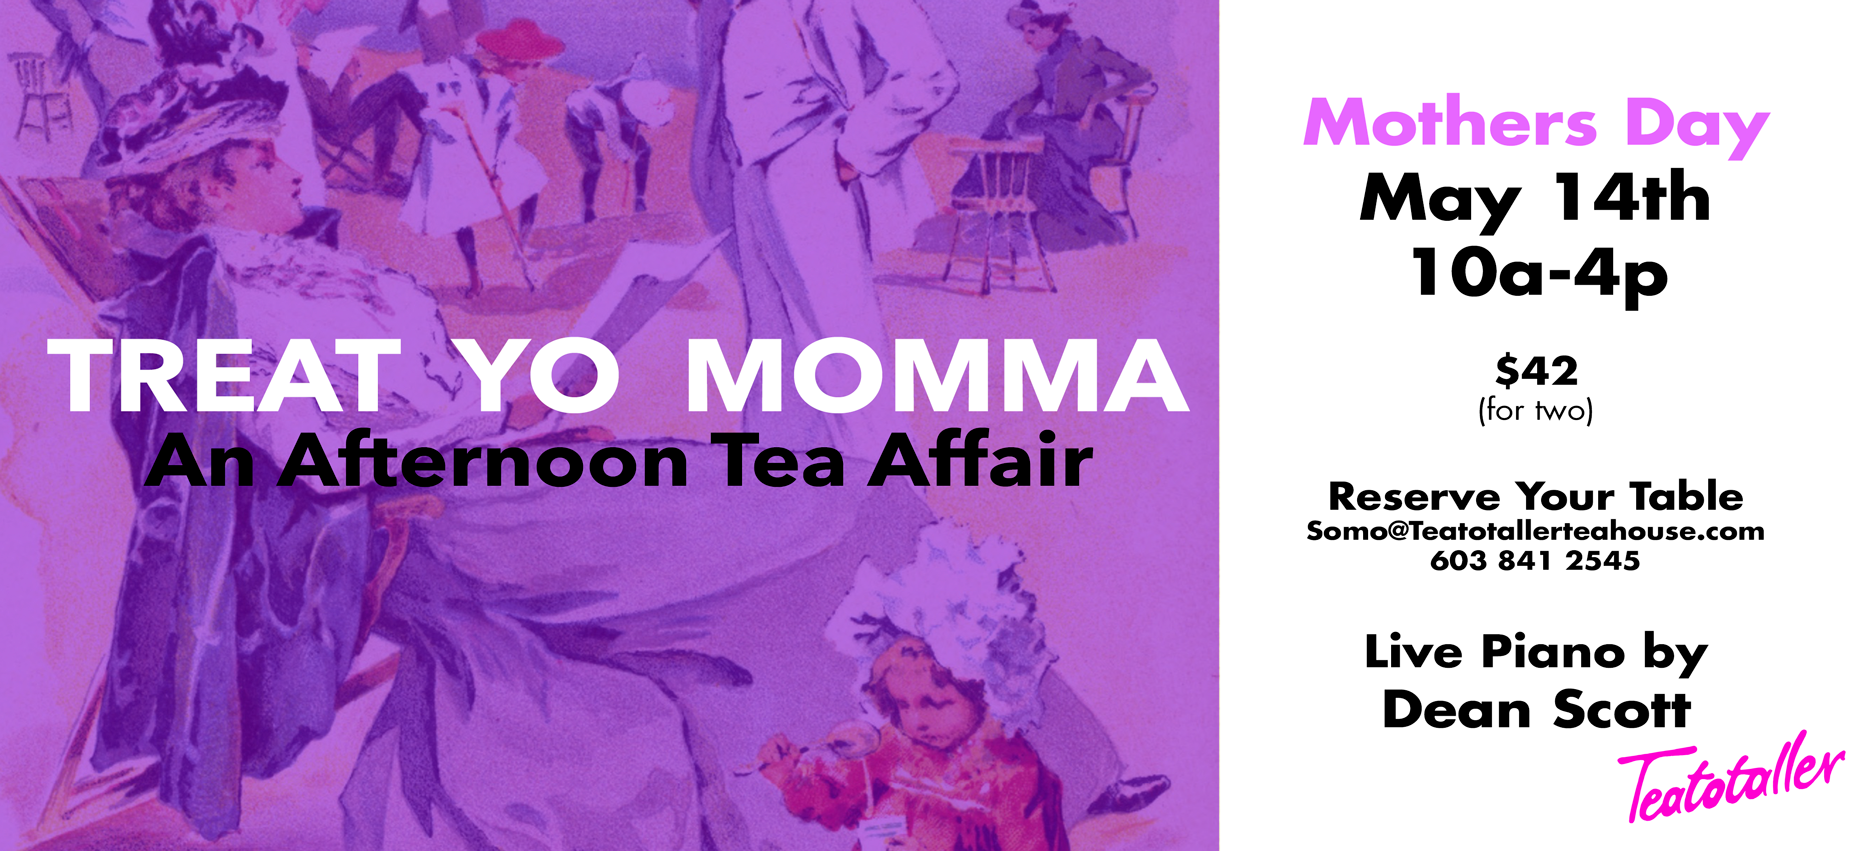 Teatotaller event: Treat Yo Momma